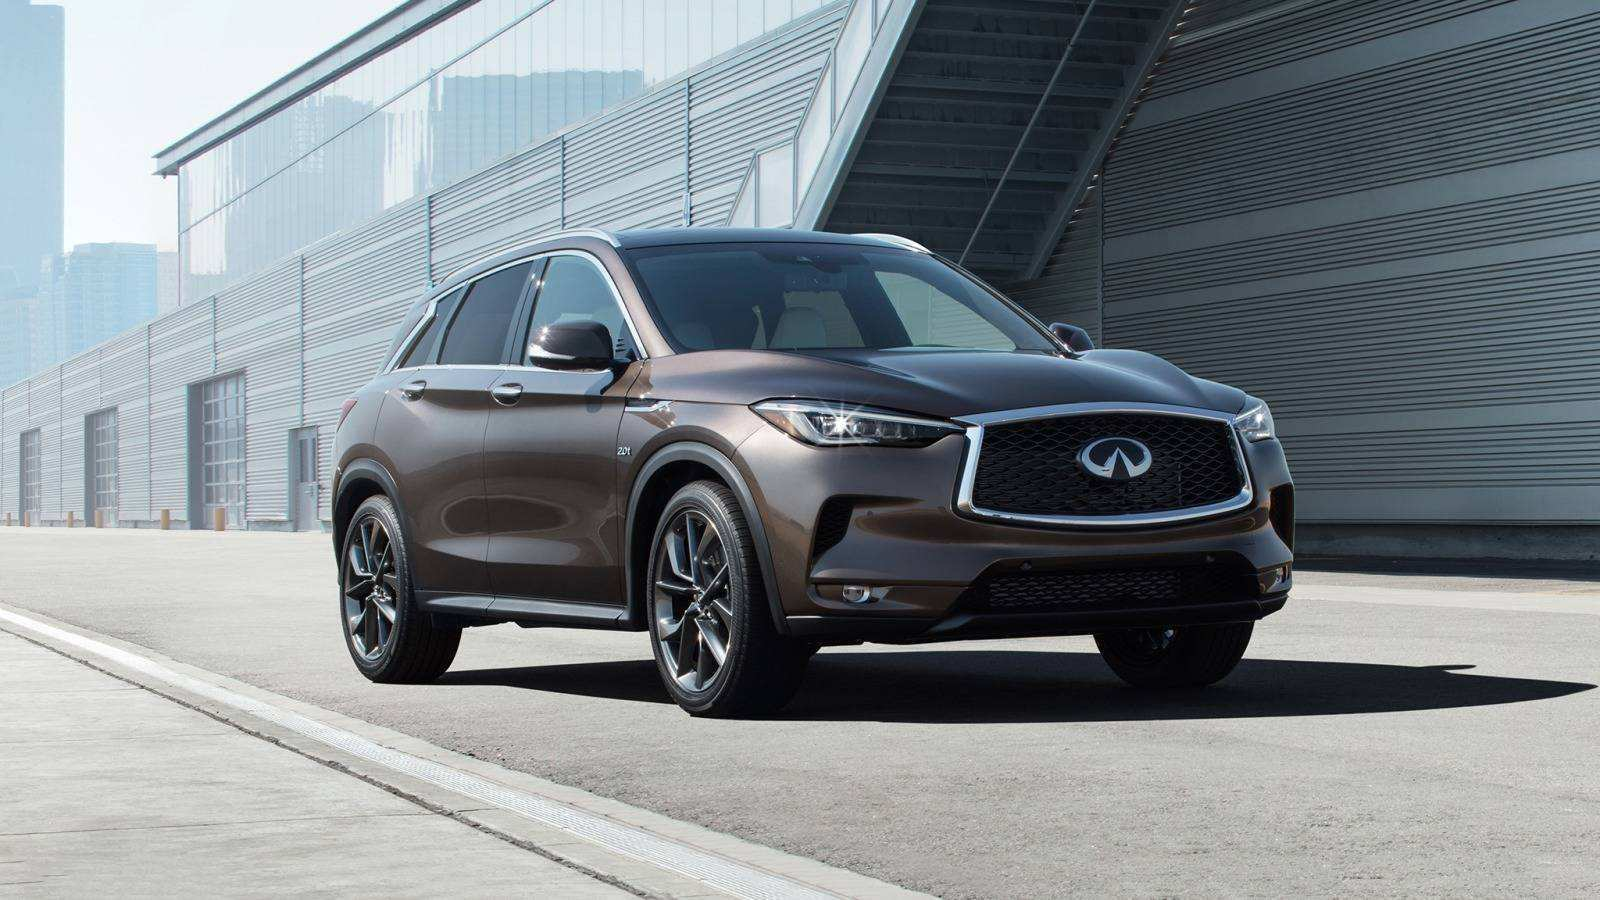 55 New 2019 Infiniti Qx50 Horsepower Performance